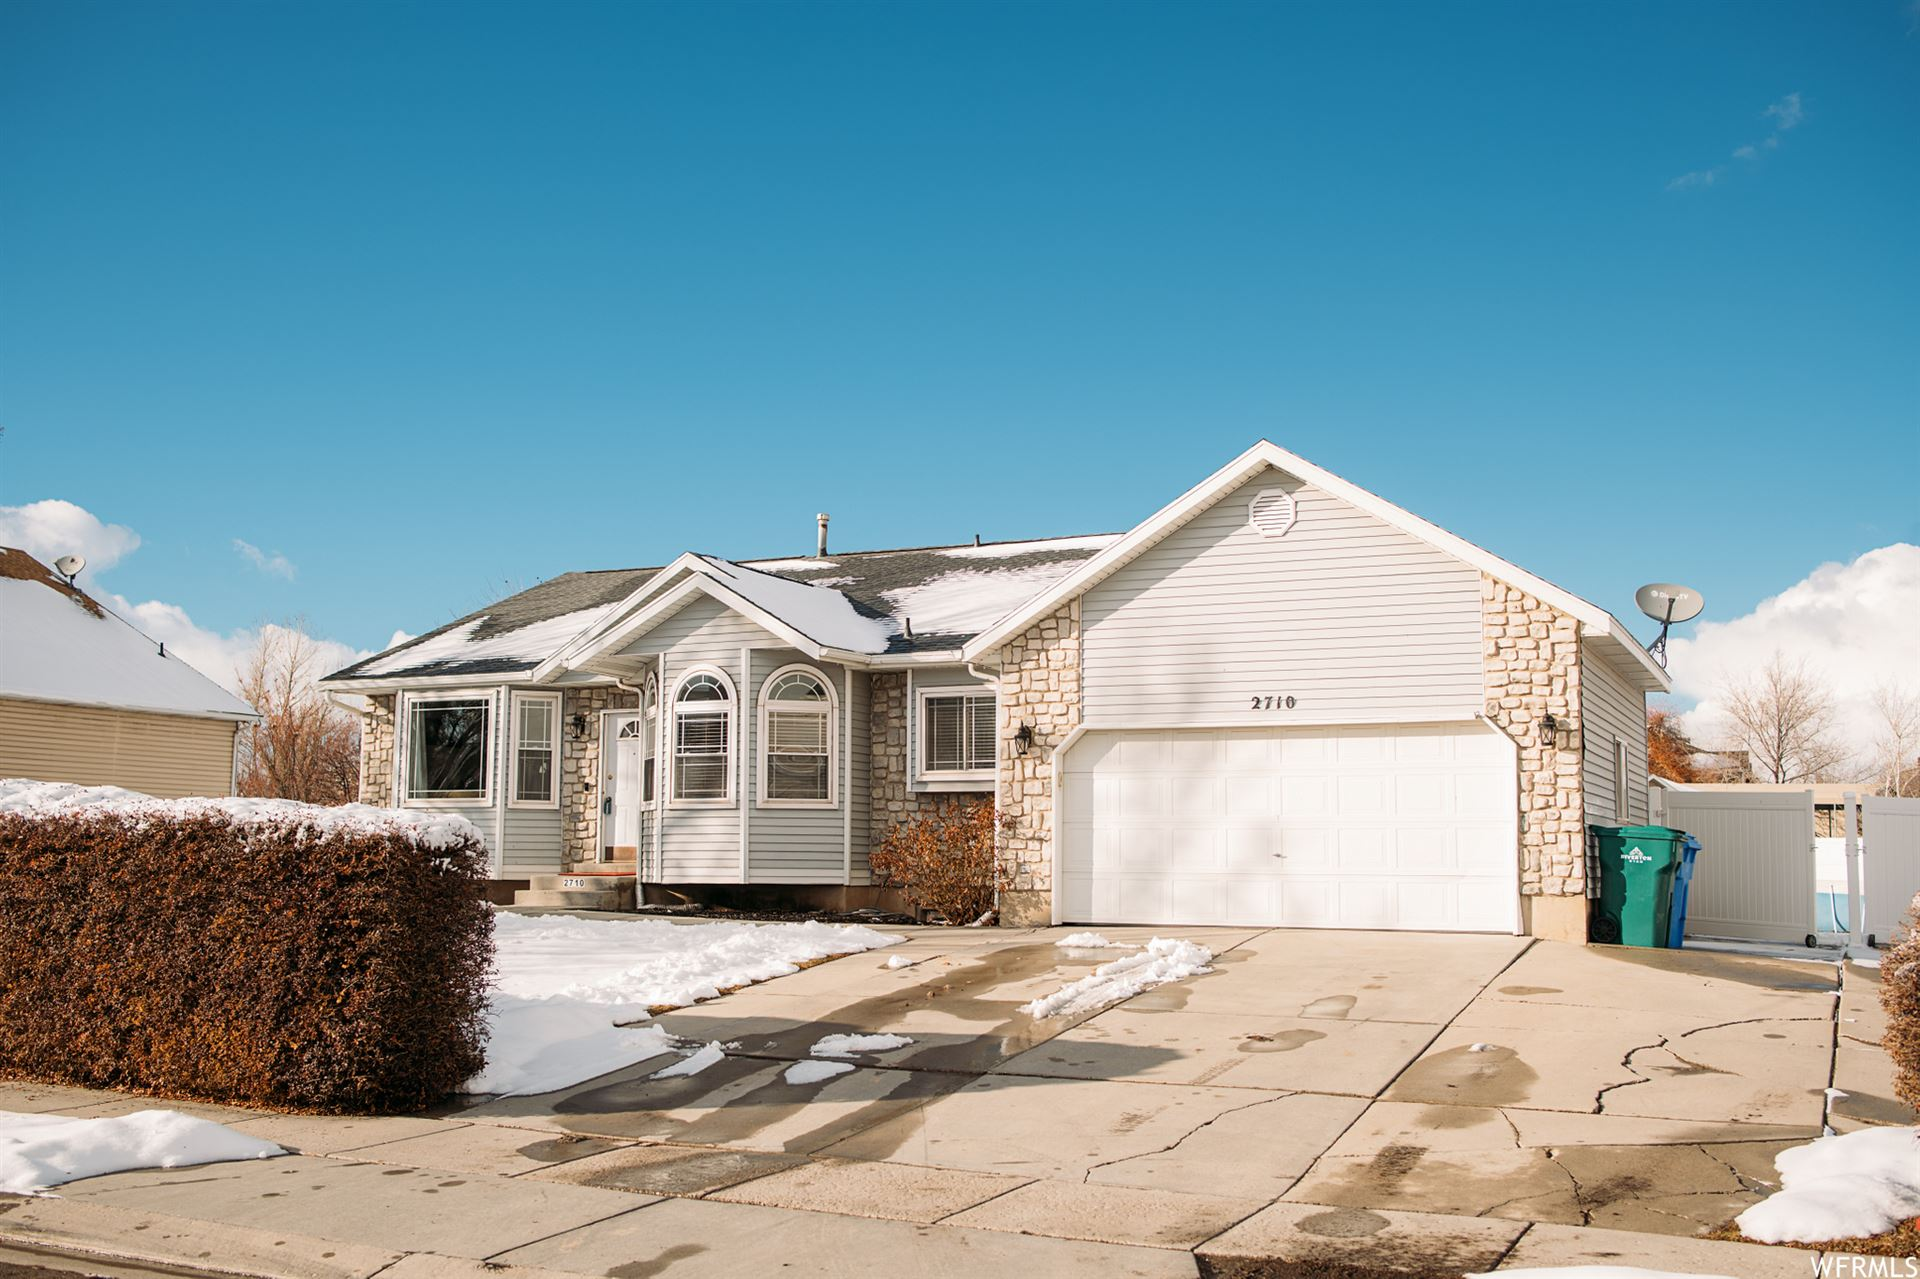 Photo of 2710 W GOLDEN S DR, Riverton, UT 84065 (MLS # 1725249)